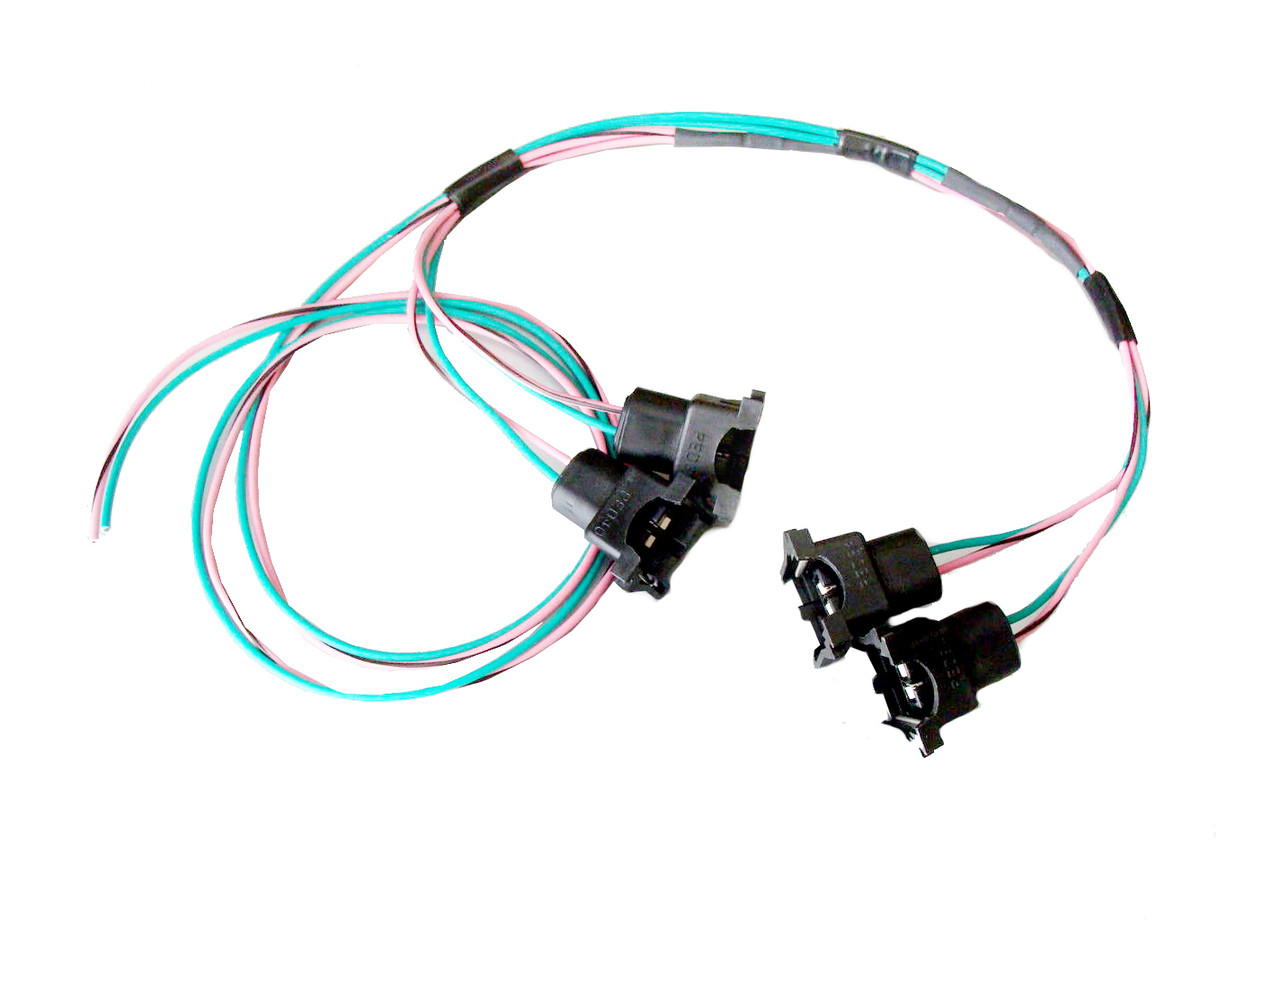 85 95 tpi lt1 fuel injector connector wiring harness assembly lh rh hawksmotorsports com wire harness [ 1280 x 992 Pixel ]